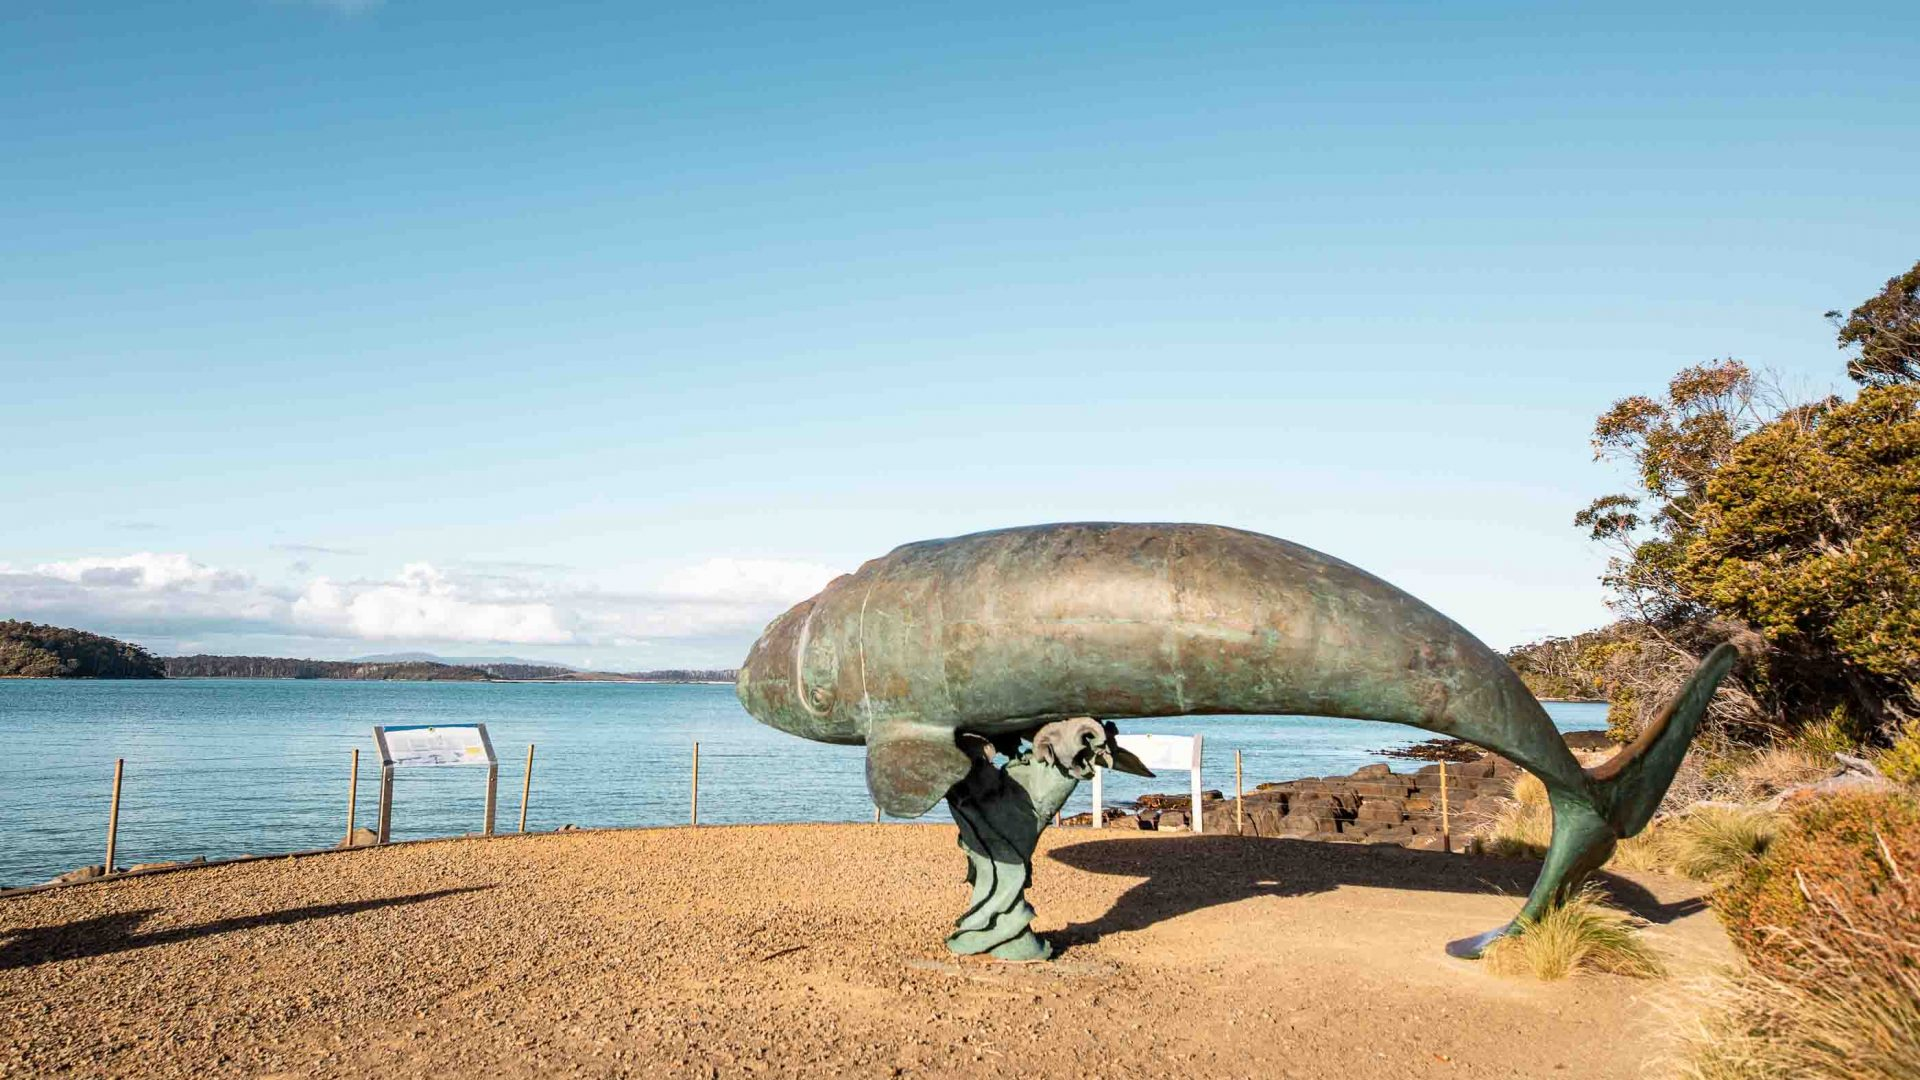 A whale monument by the bay.